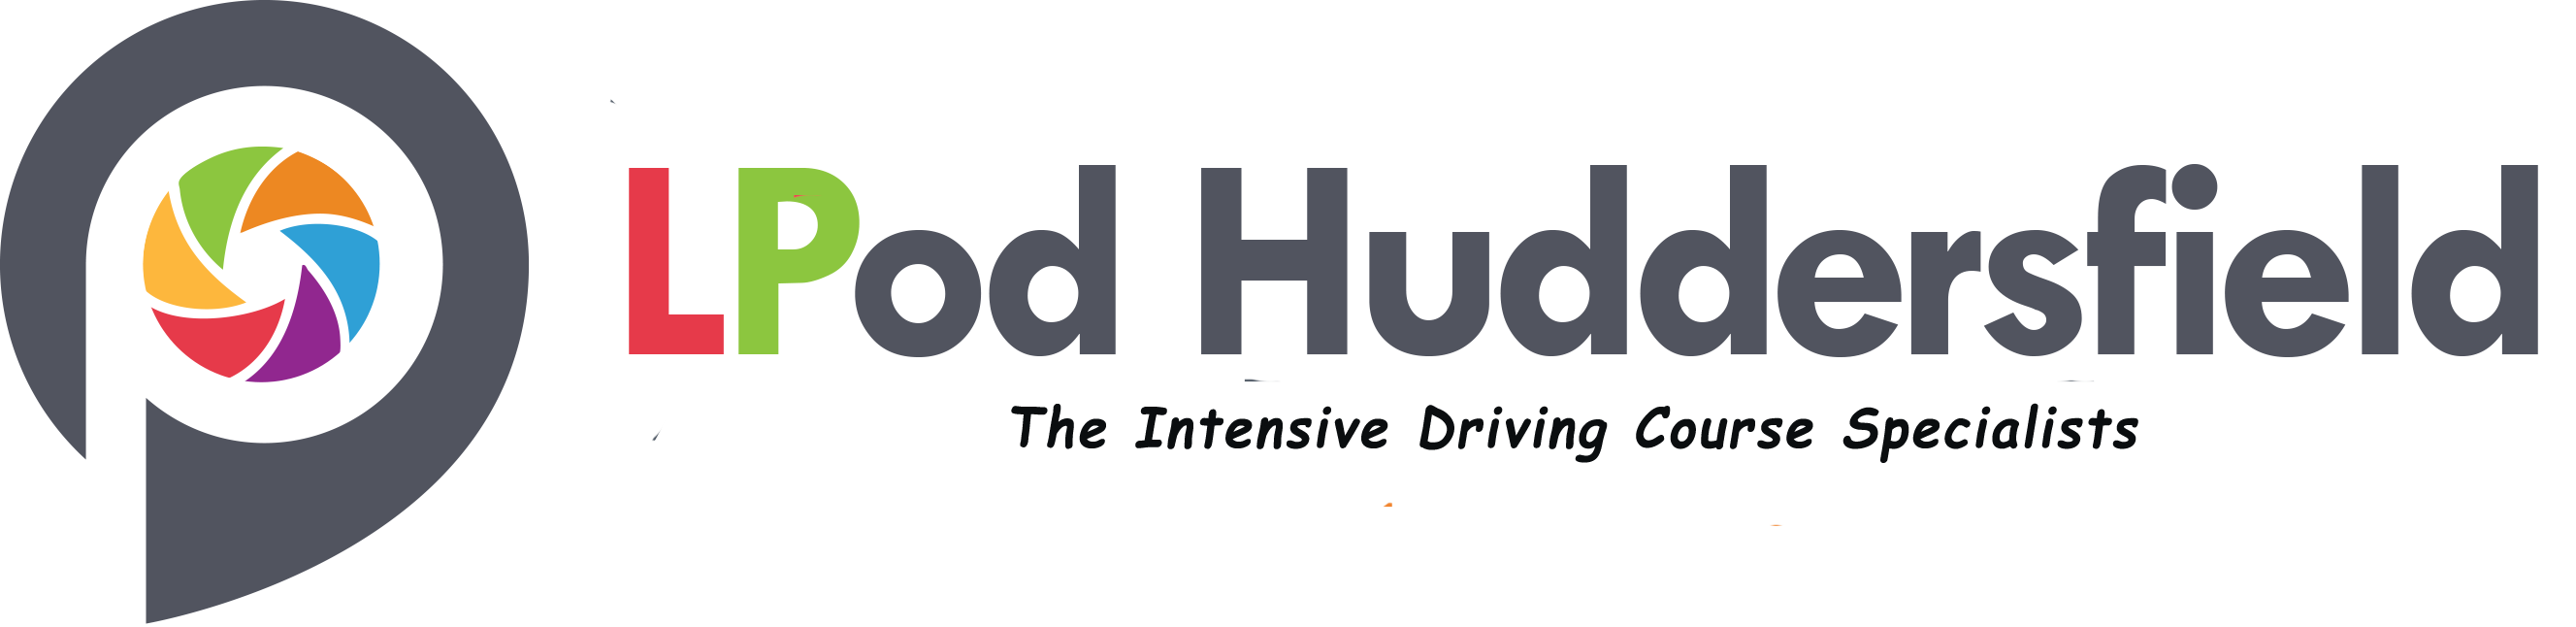 intensive driving courses huddersfield, intensive driving lessons huddersfield, intensive driving lessons huddersfield